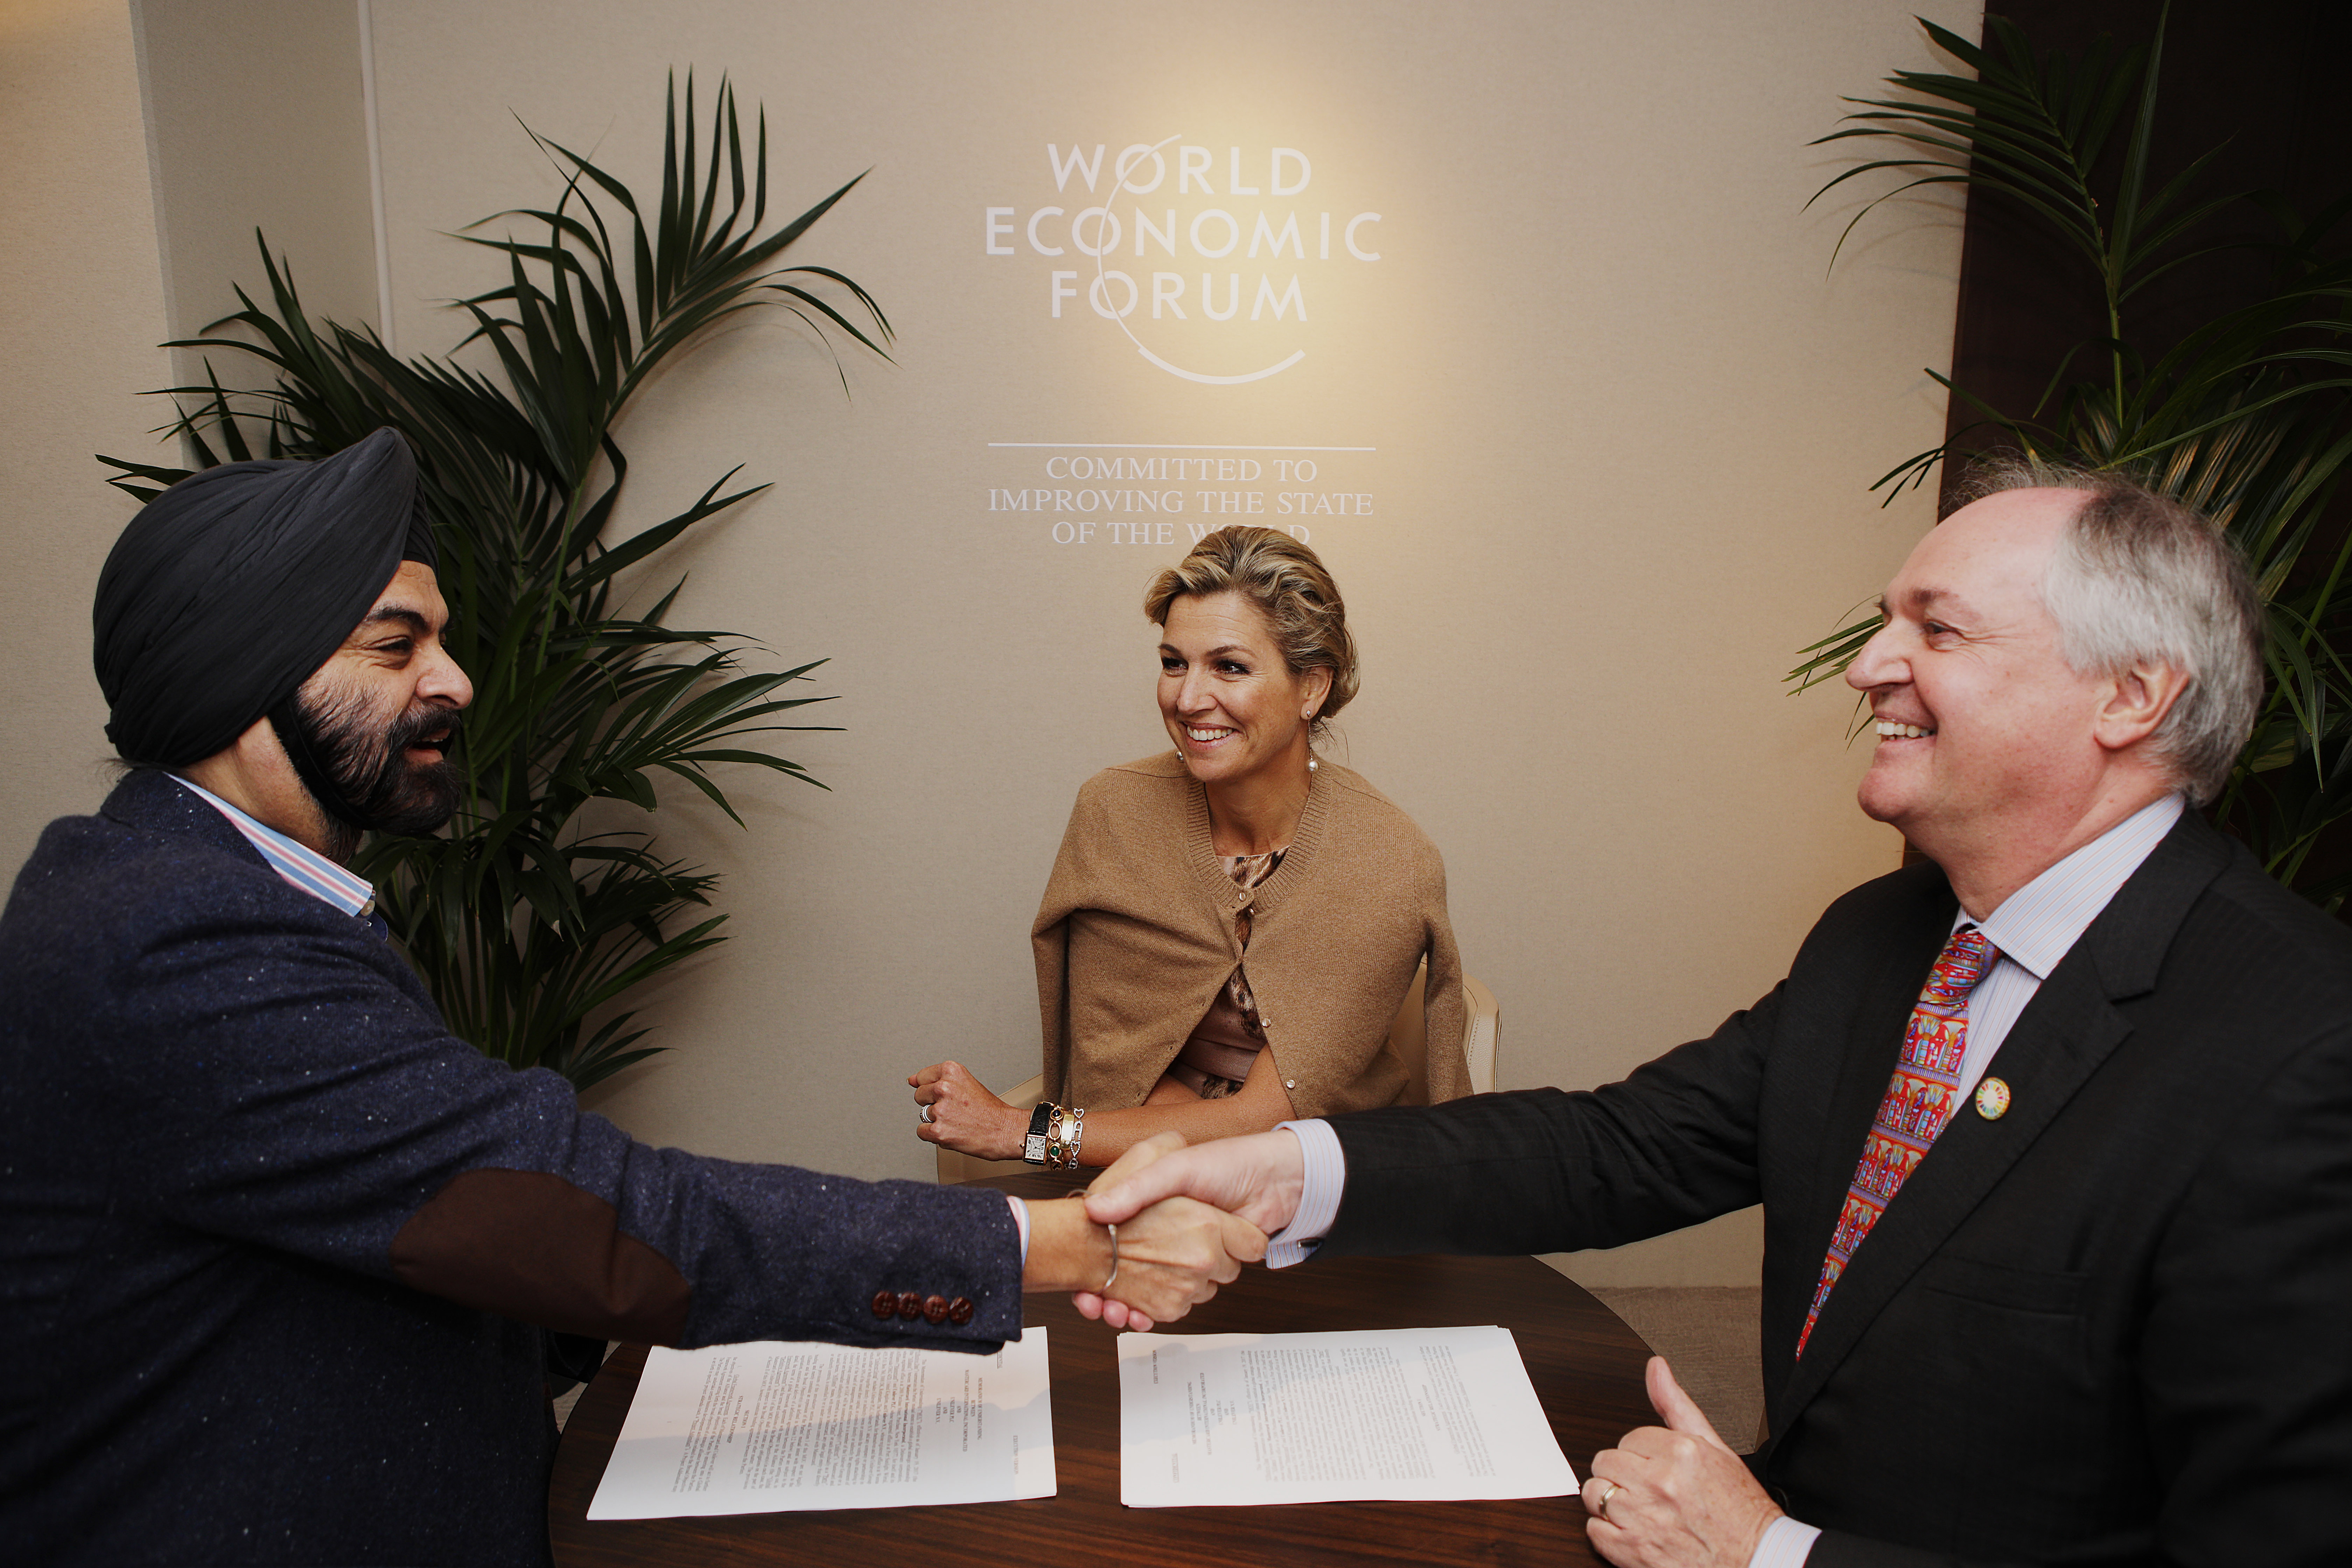 During the World Economic Forum's Annual Meeting in Davos, Her Majesty Queen Maxima of the Netherlands, UN Secretary-General's Special Advocate for Inclusive Finance for Development (center) witnessed Ajay Banga, president and CEO of Mastercard (left), and Paul Polman, Chief Executive of Unilever (right), signing a strategic partnership designed to advance financial inclusion efforts by empowering small and micro businesses in emerging markets.